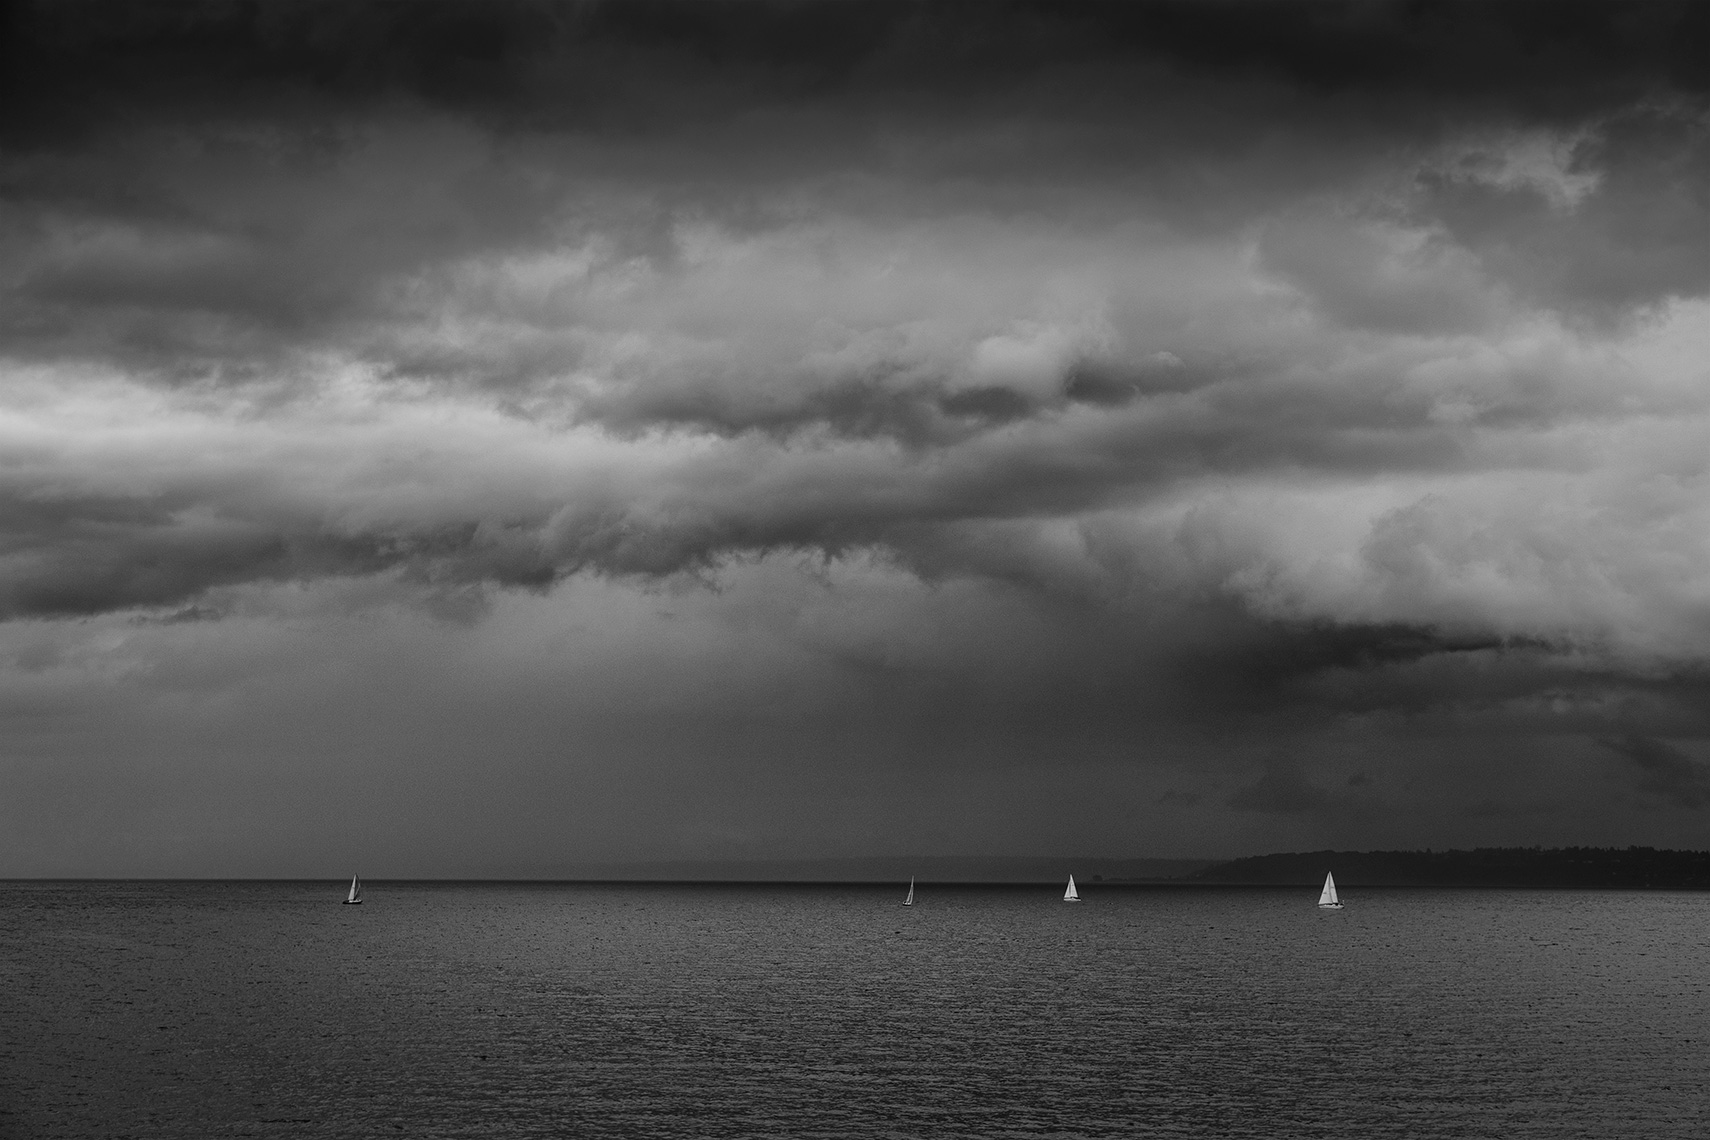 Puget-Sound-storm-sailers